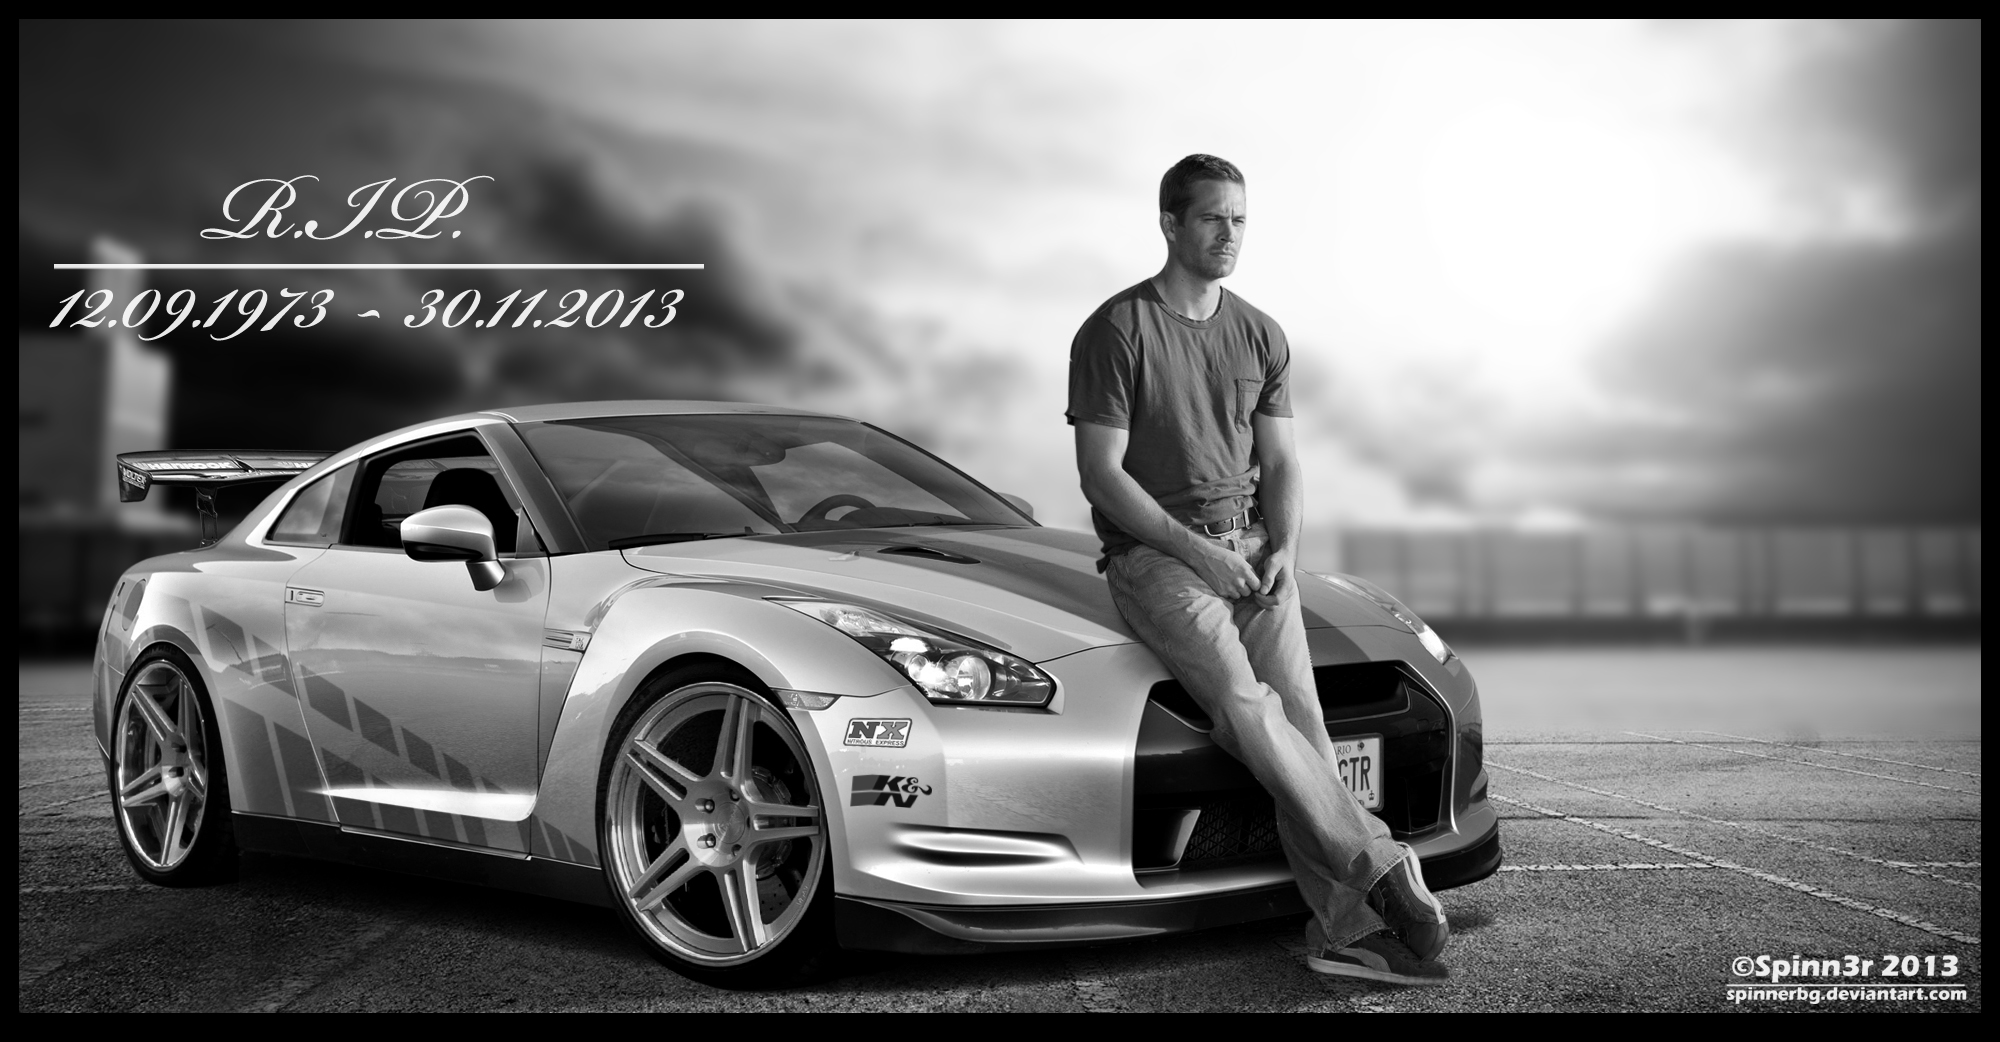 73 Paul Walker Wallpapers On Wallpapersafari